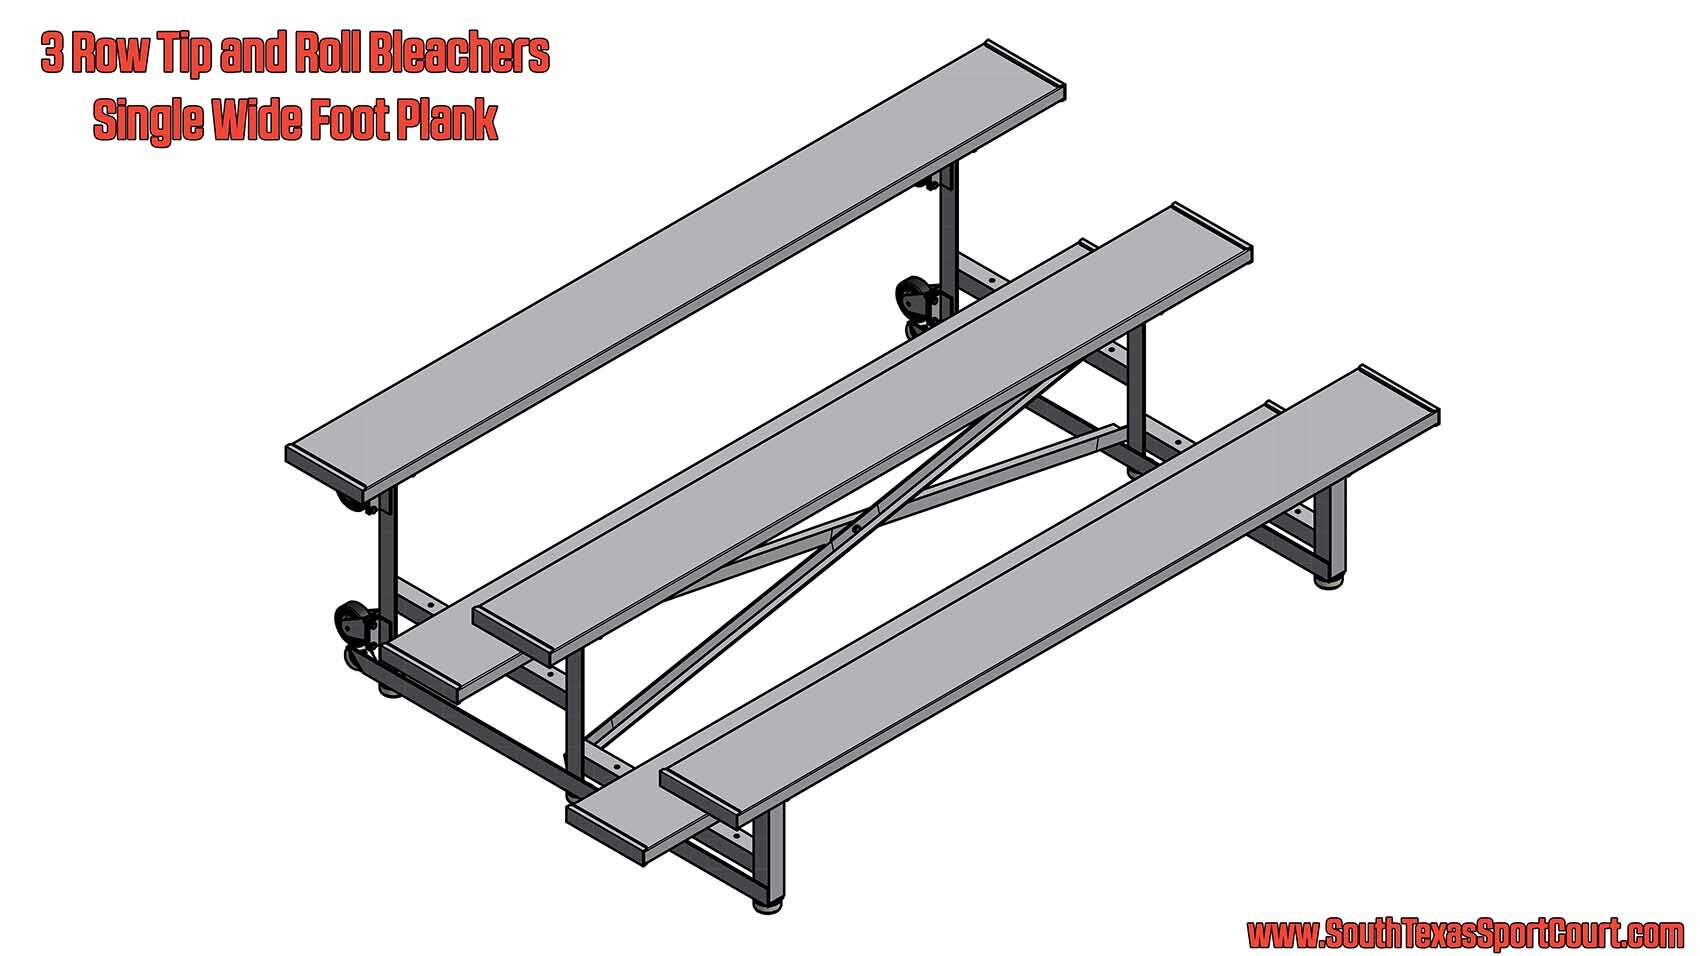 3 Row Tip and Roll Bleachers